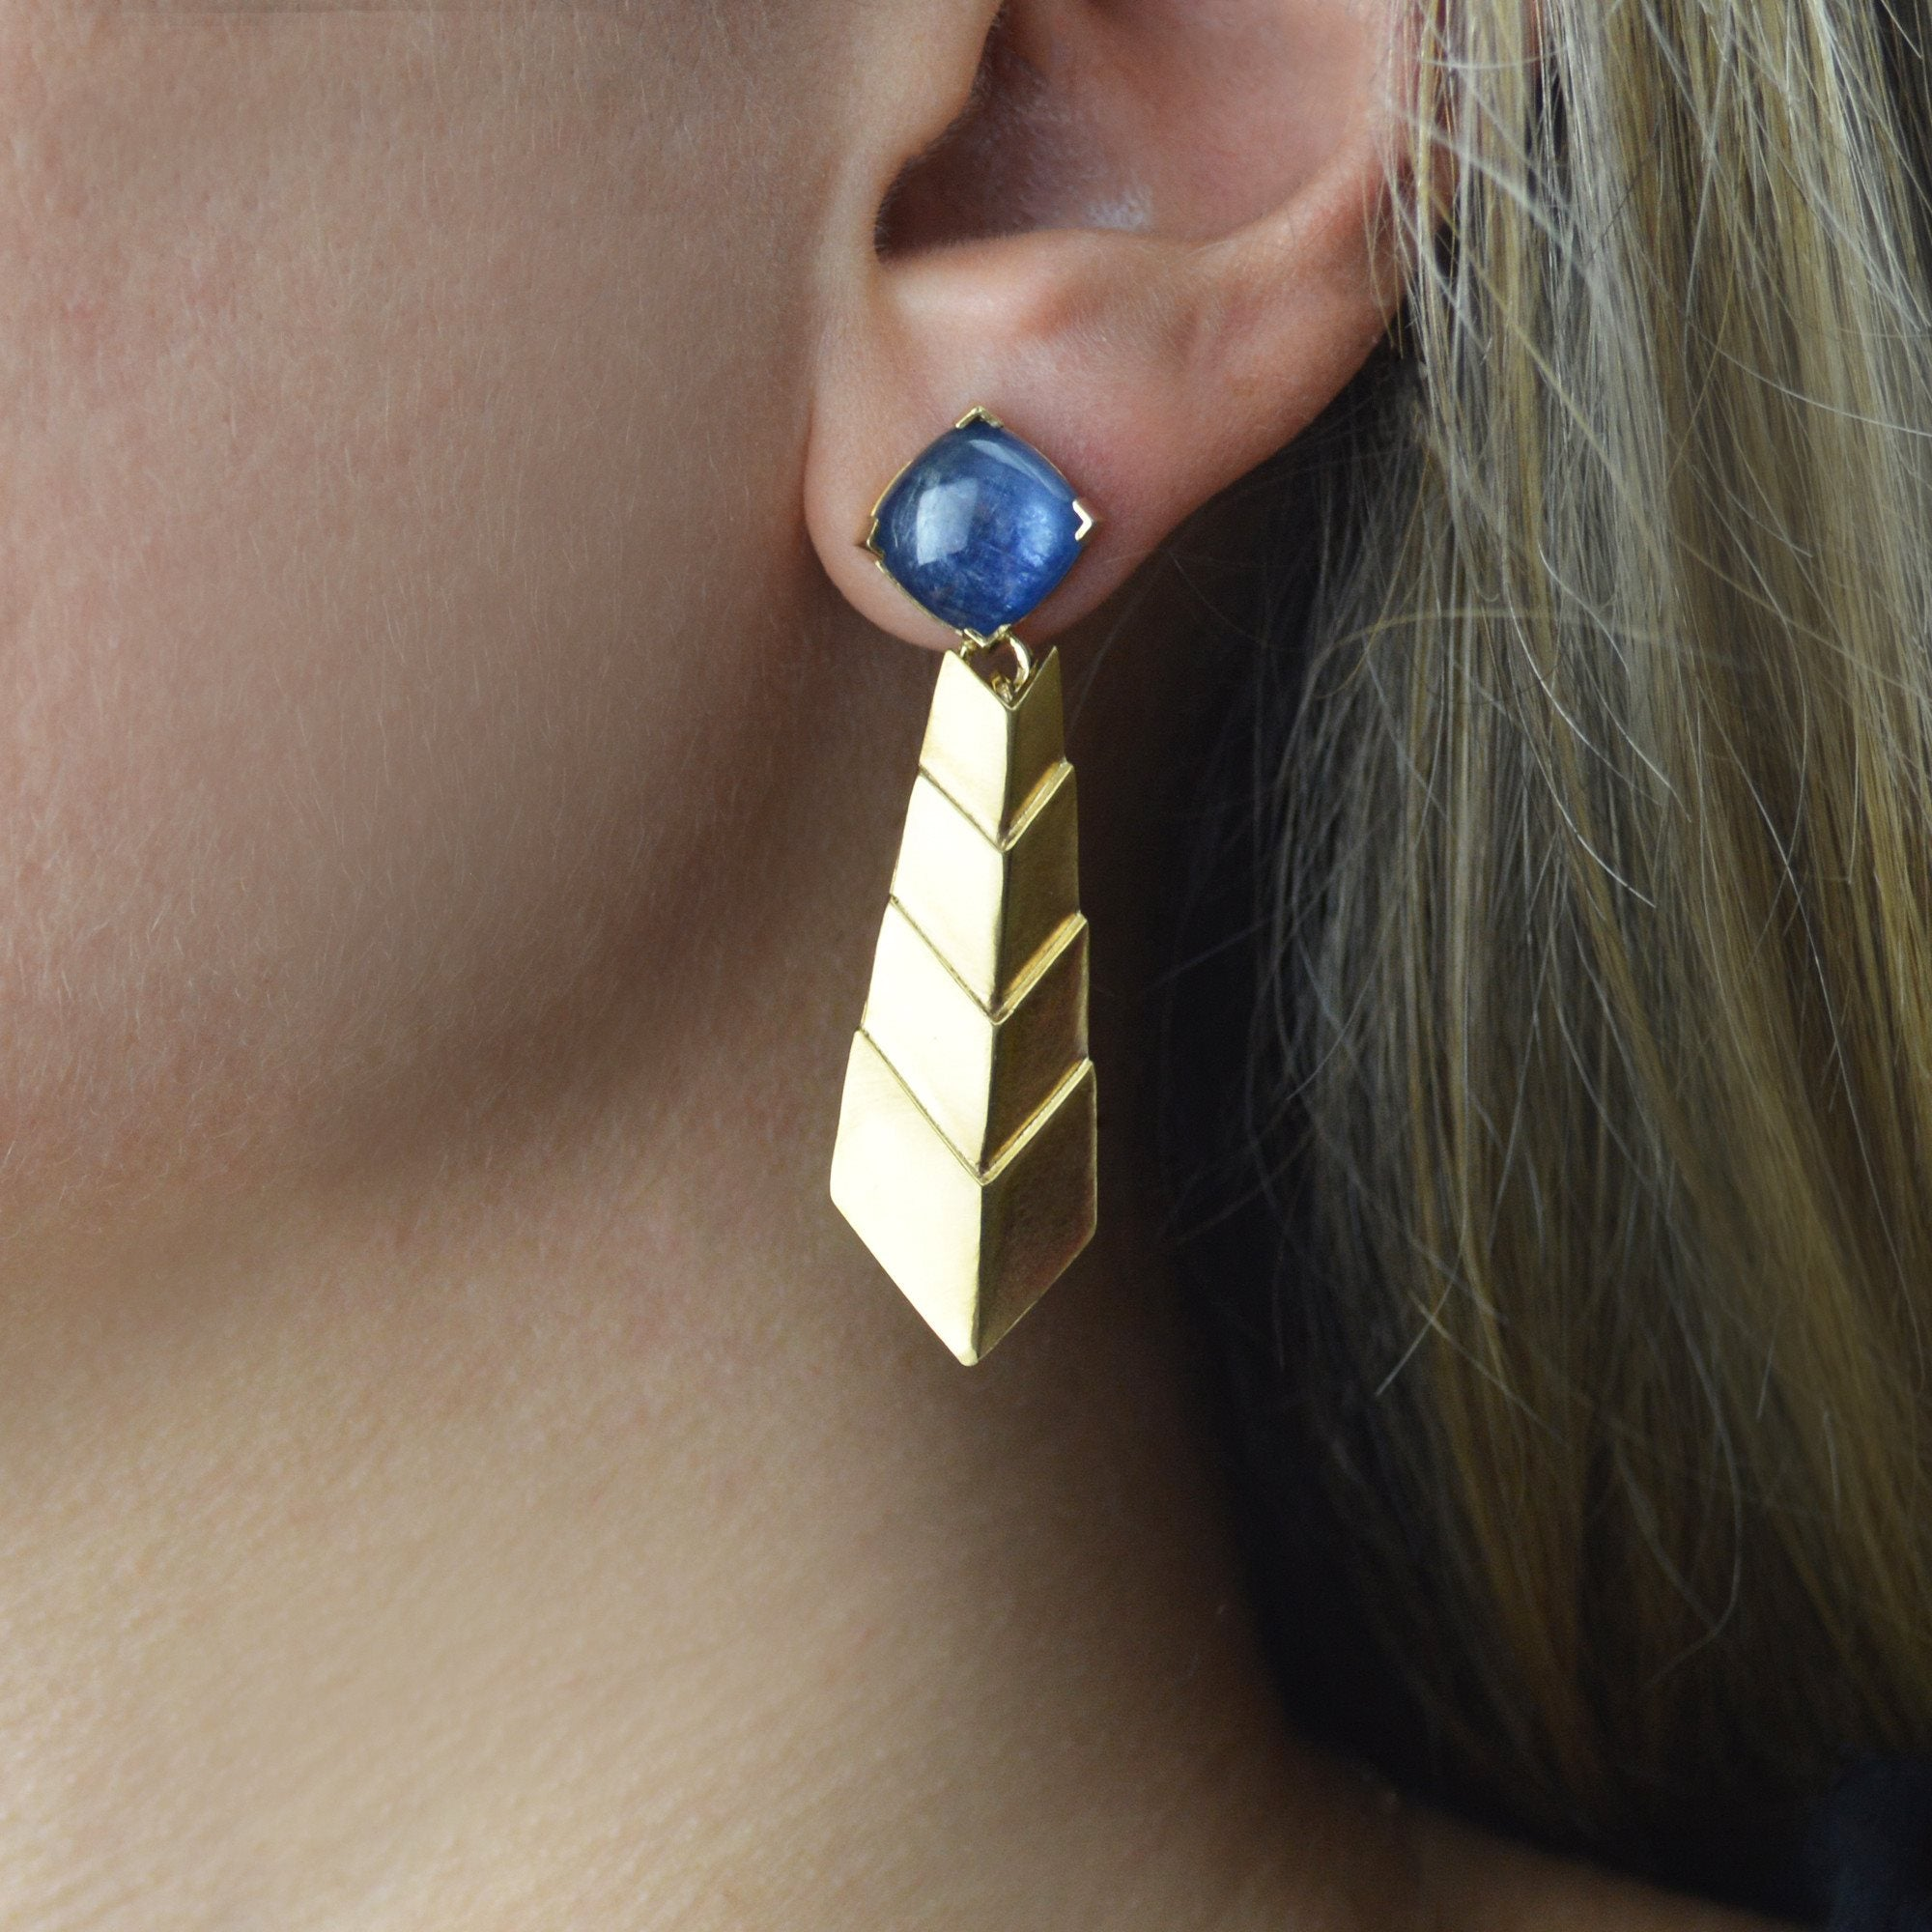 Kyanite Comet Earrings in 24k Gold and Sterling Silver